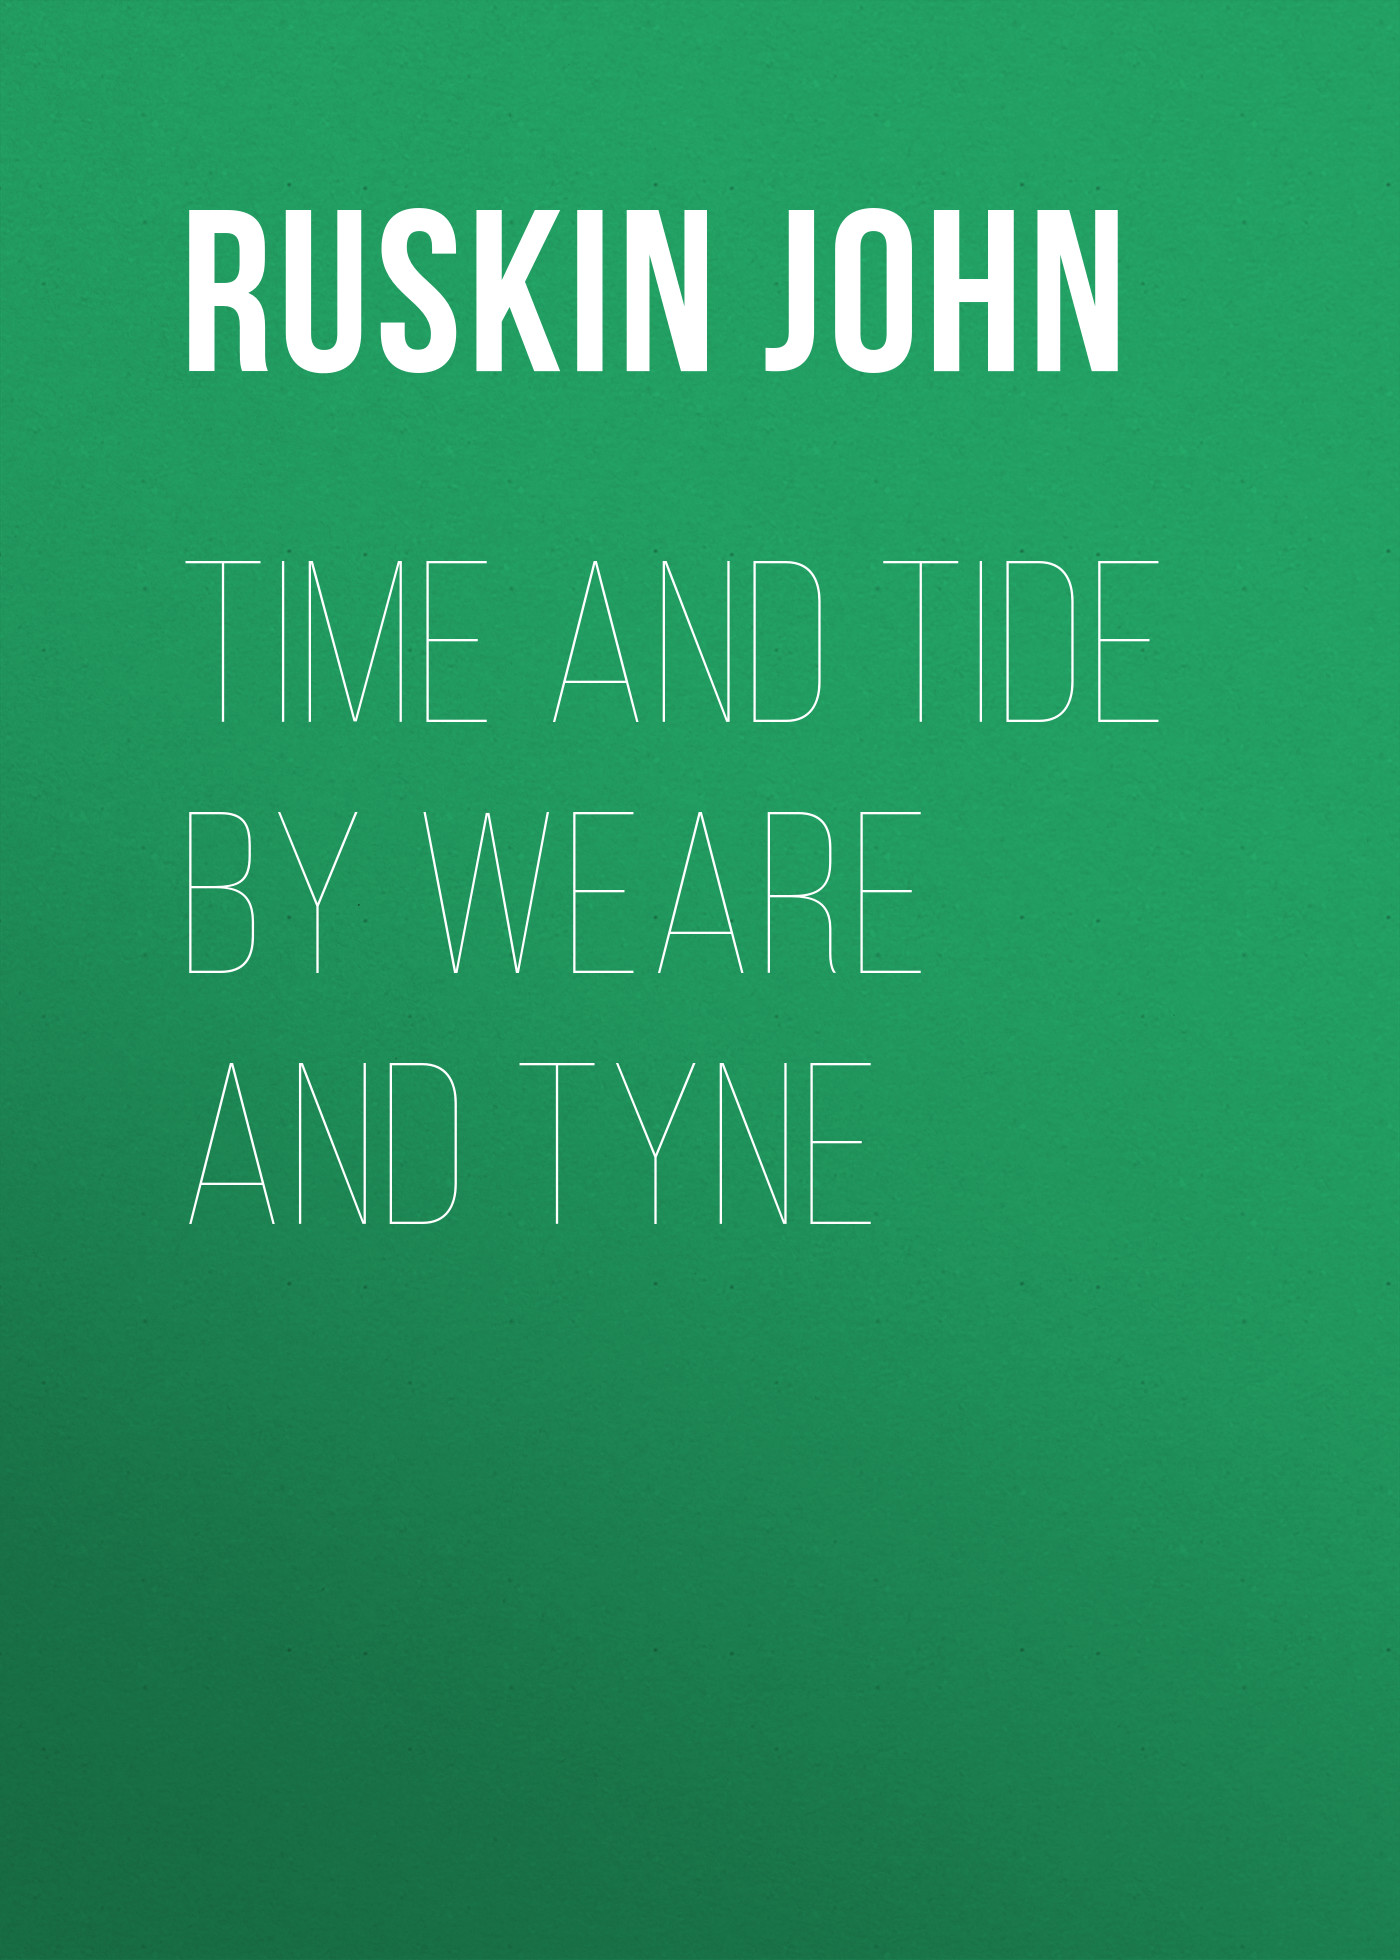 Ruskin John Time and Tide by Weare and Tyne john ruskin ruskin on pictures a collection of criticisms by john ruskin not heretofore re printed and now re edited and re arranged